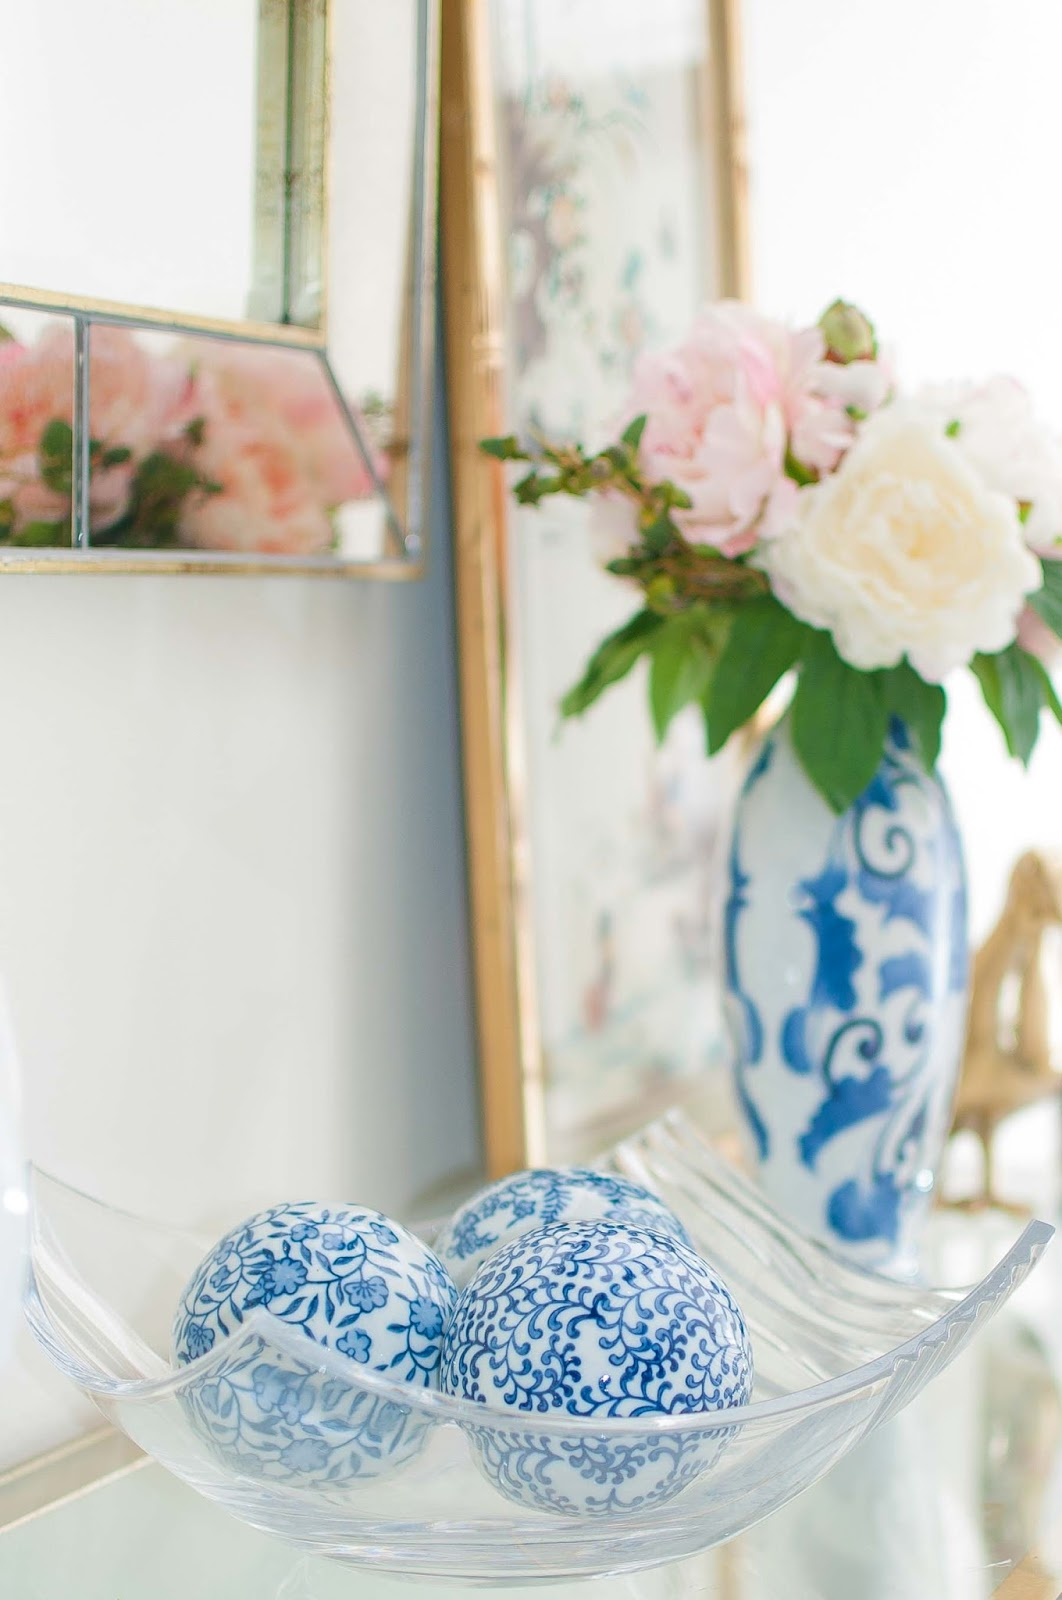 Blue and white decorations on a foyer table with ginger jars and bamboo accents.